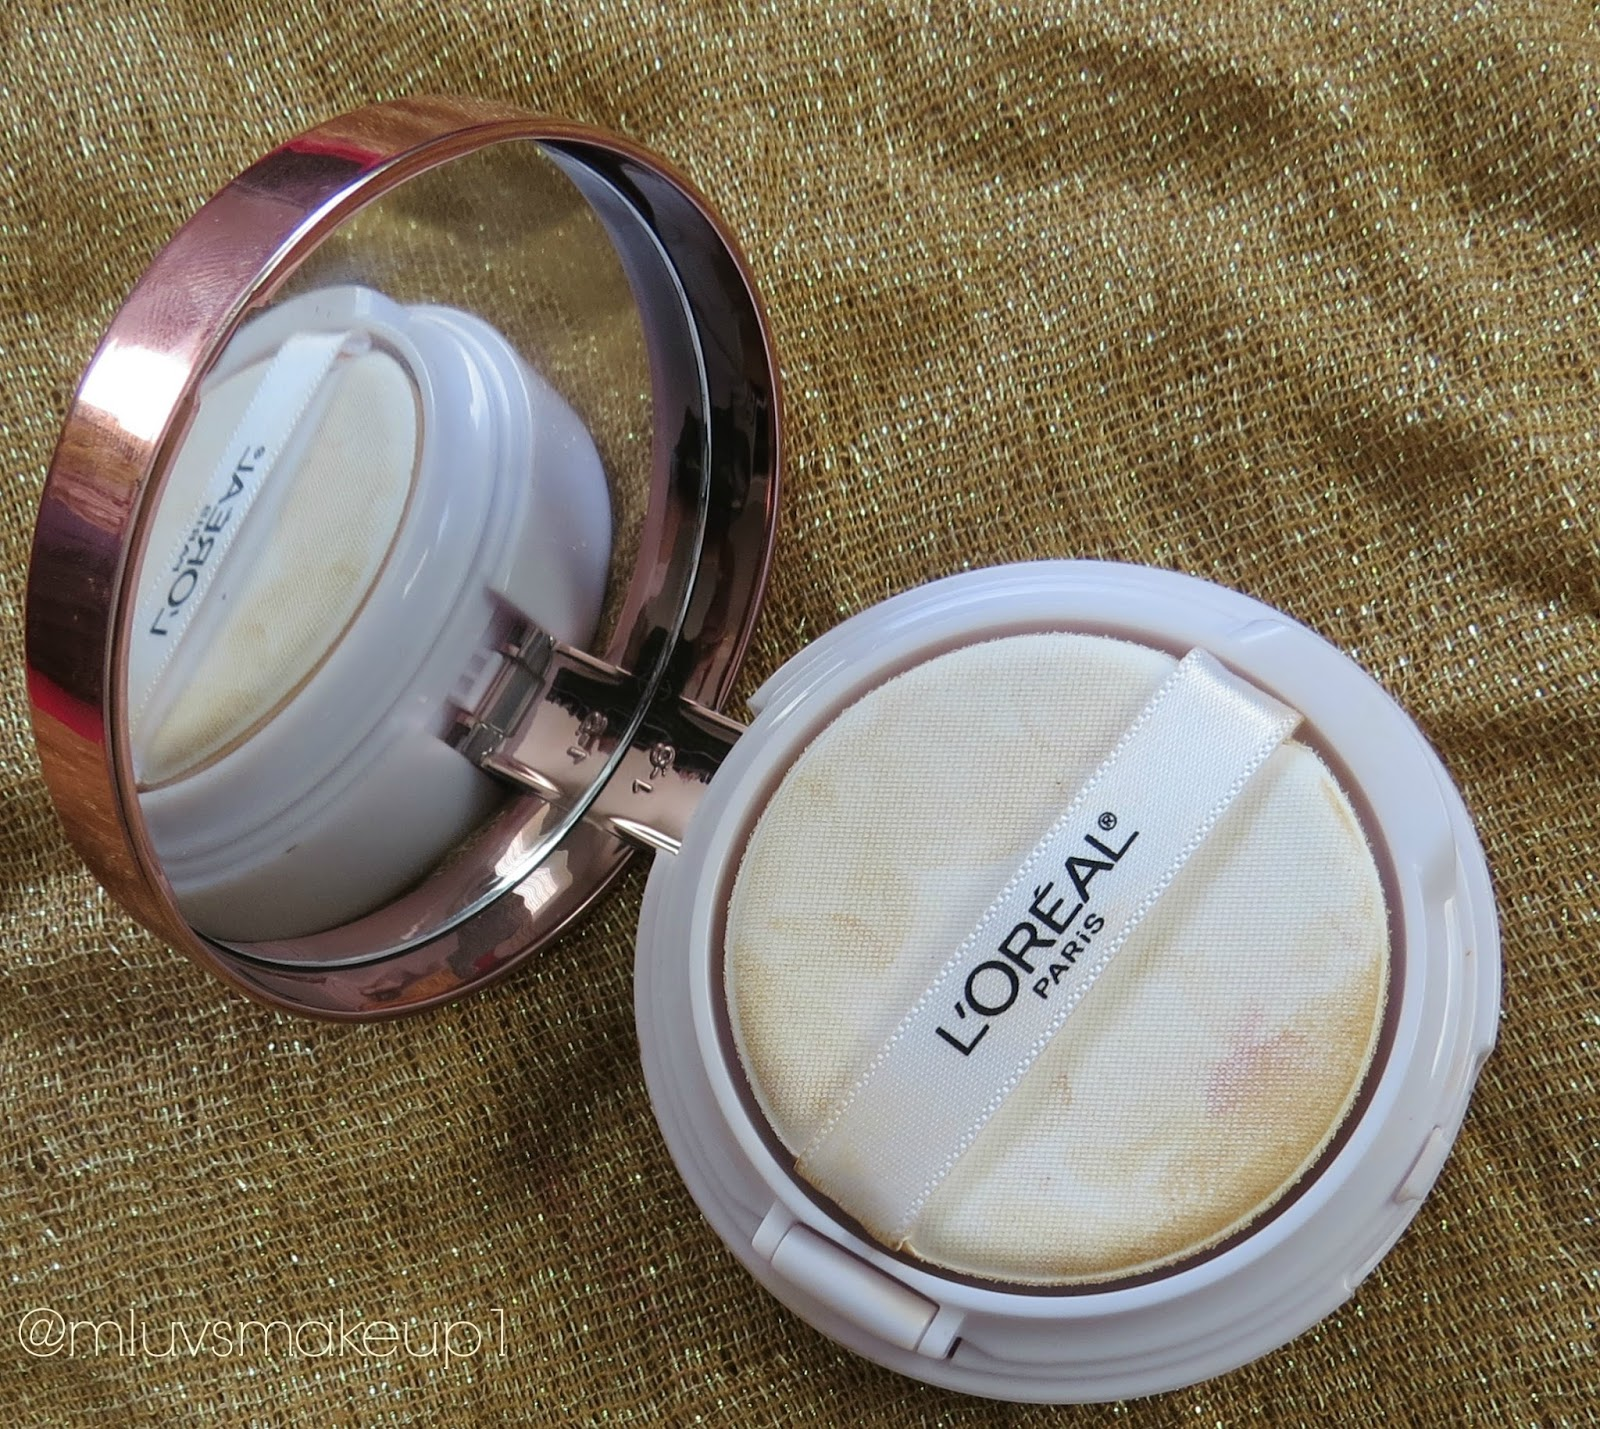 Muslimahluvsmakeup Loreal Lumi True Match Cushion Foundation Review Buildable Luminous Retails Between 14 1699 Depending On Where You Go To Purchase It This Is Suppose Create A